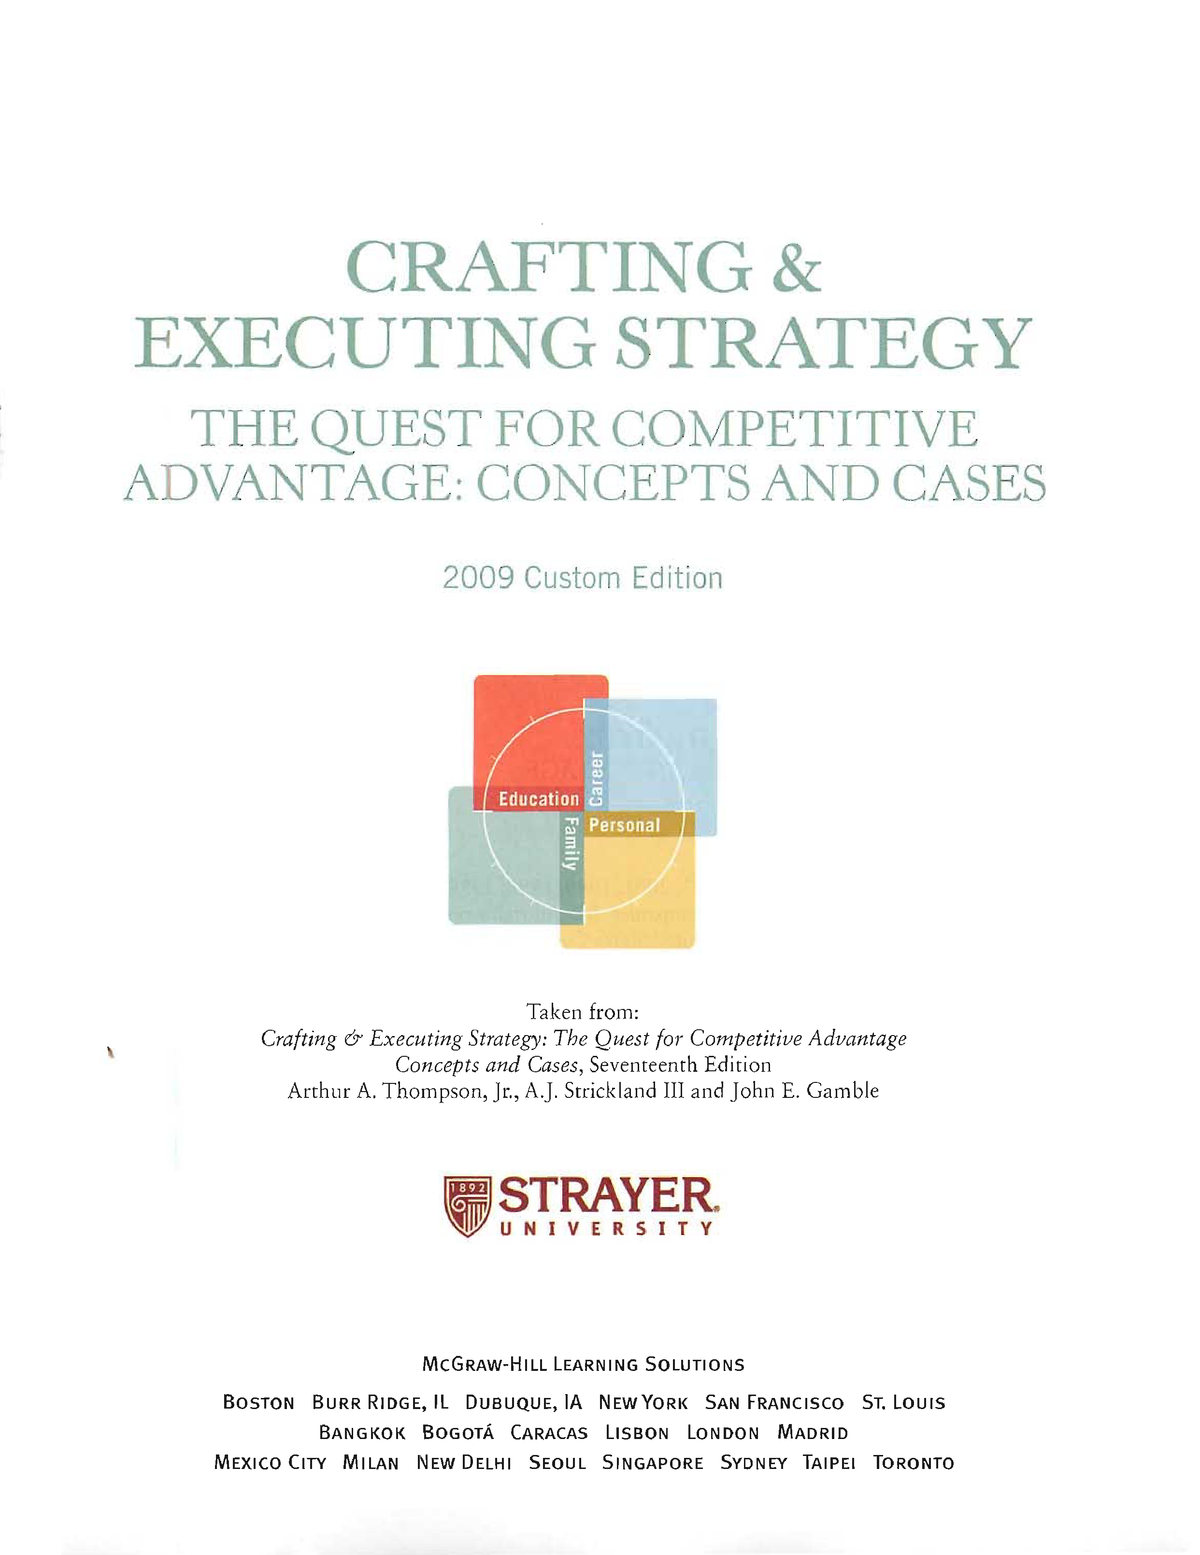 Thompson Crafting and executing strategy pdf - 111111 - StuDocu